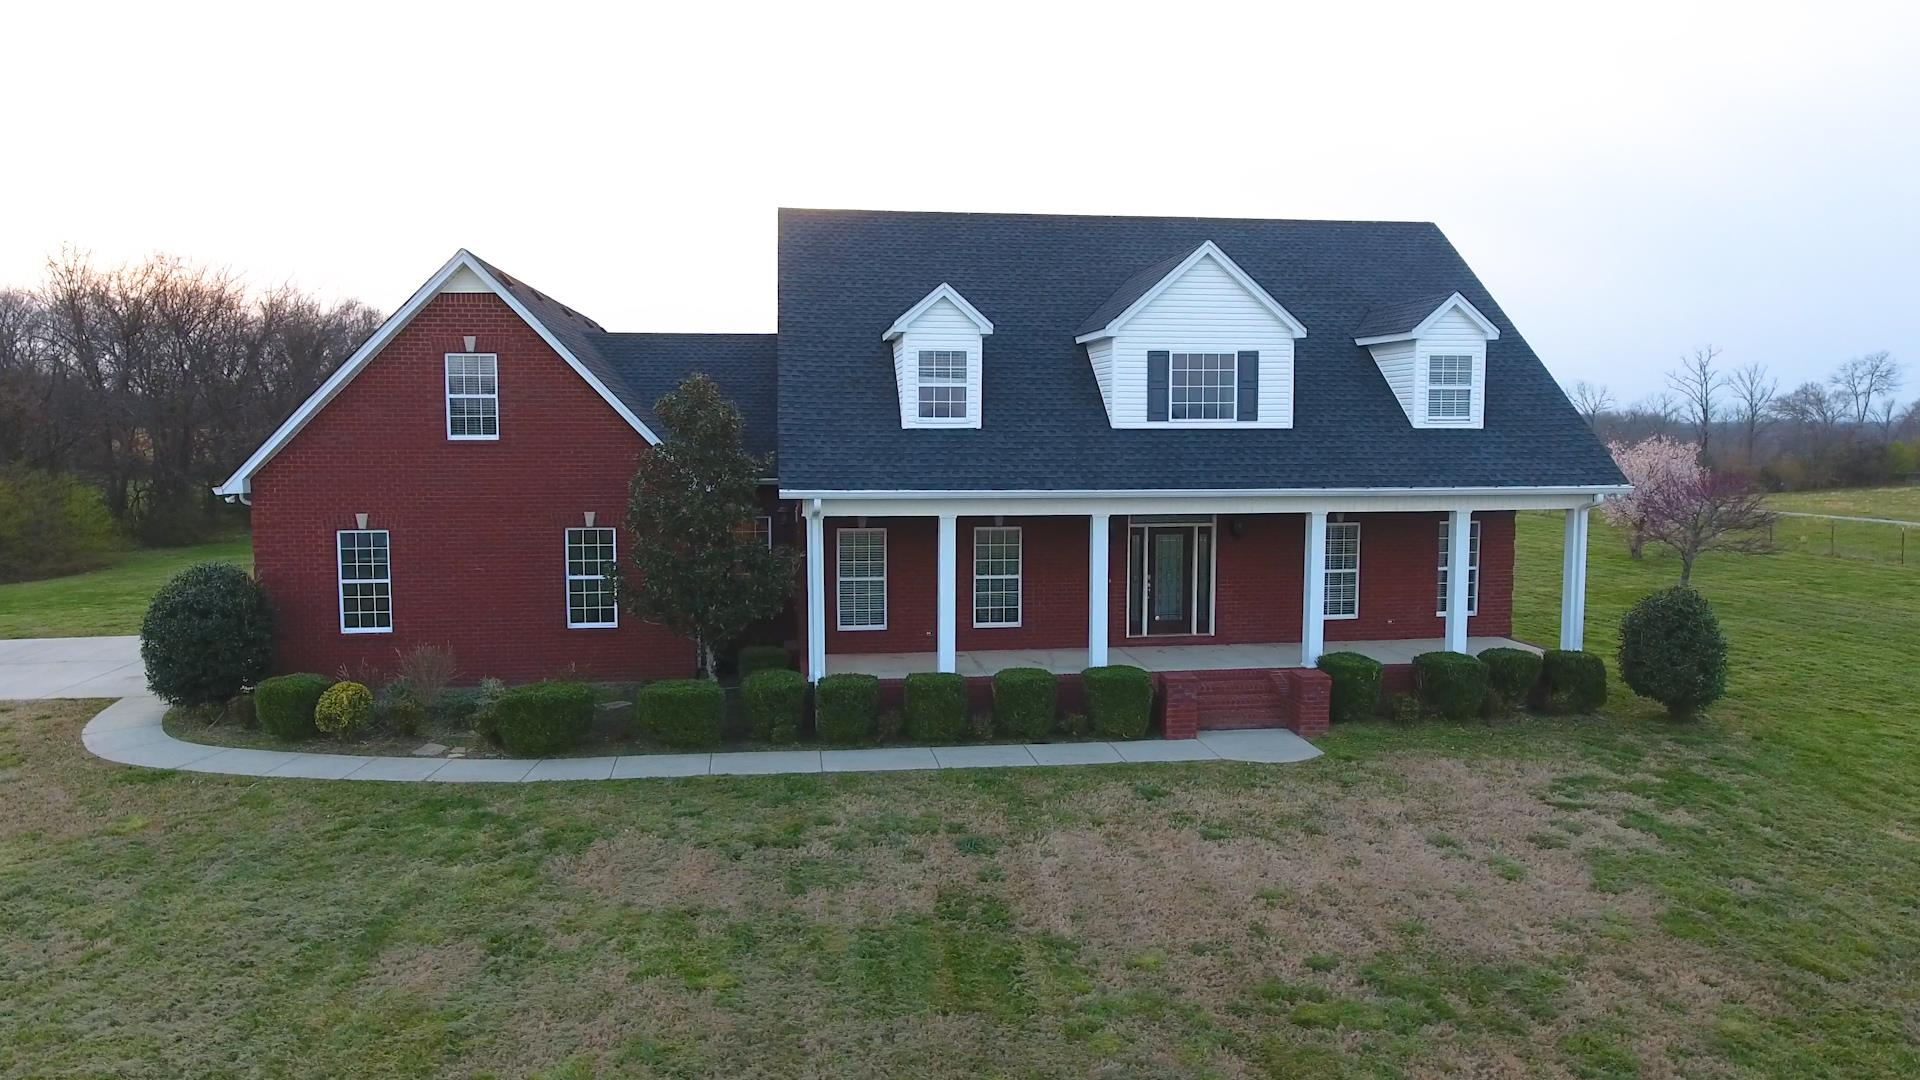 297 Old Nashville Dirt Rd, Shelbyville, TN 37160 - Shelbyville, TN real estate listing